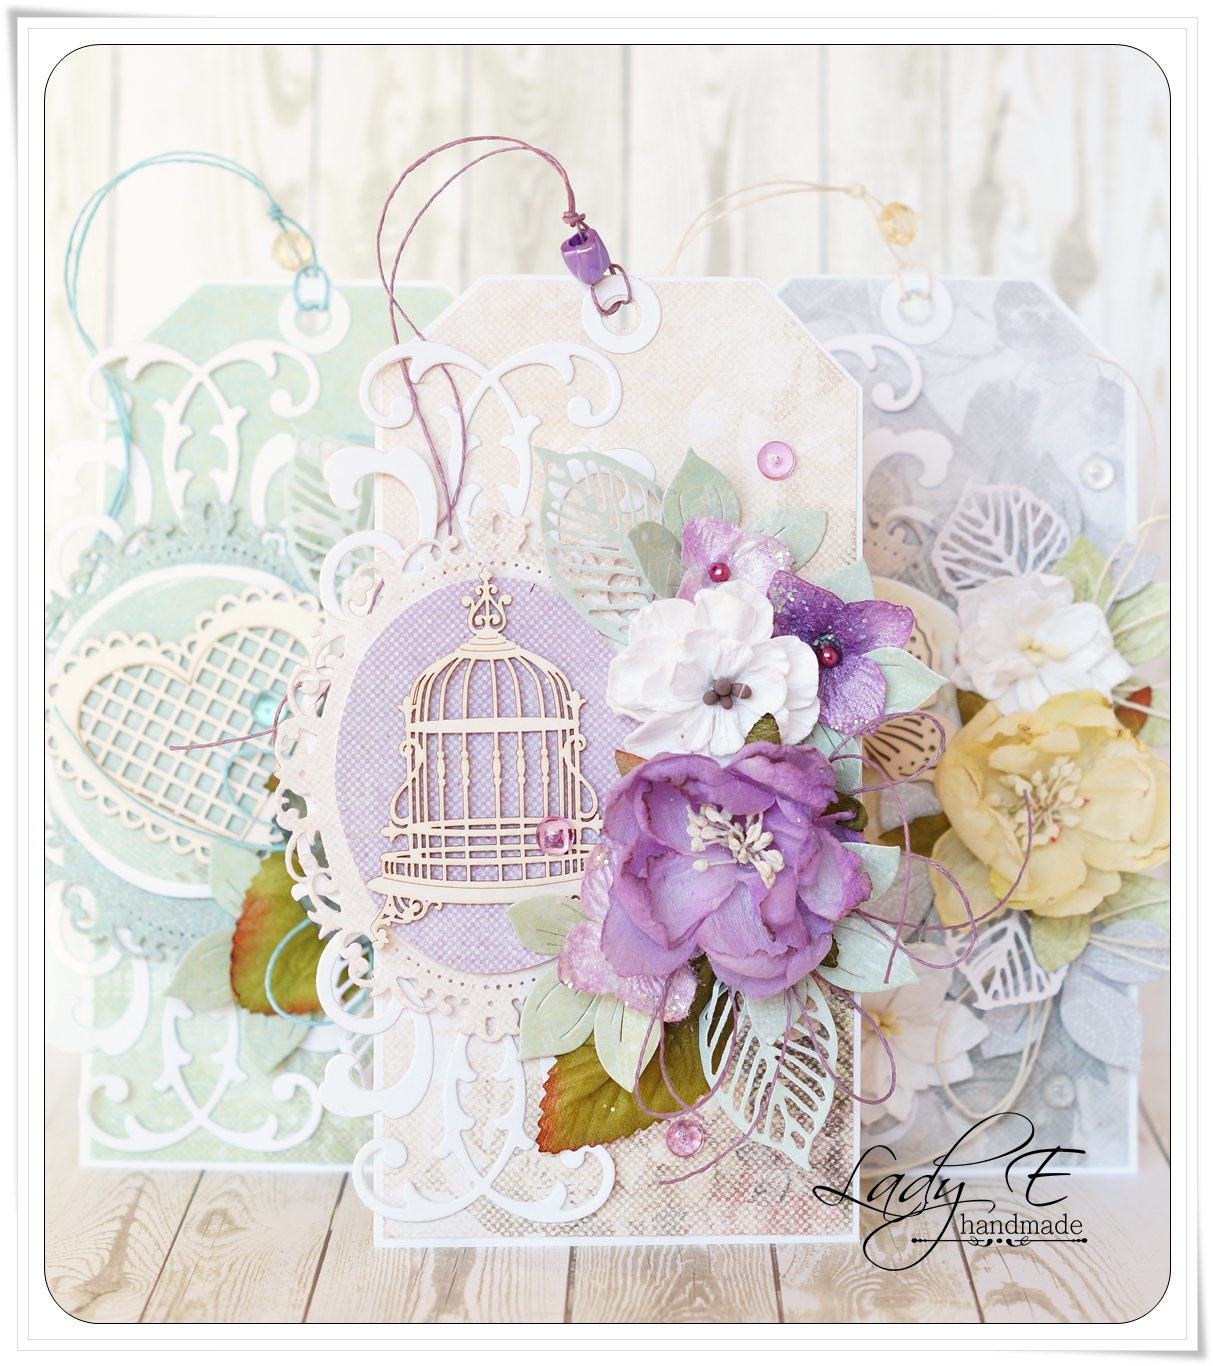 Three tags scrap art by lady e for Beautiful pastel colors